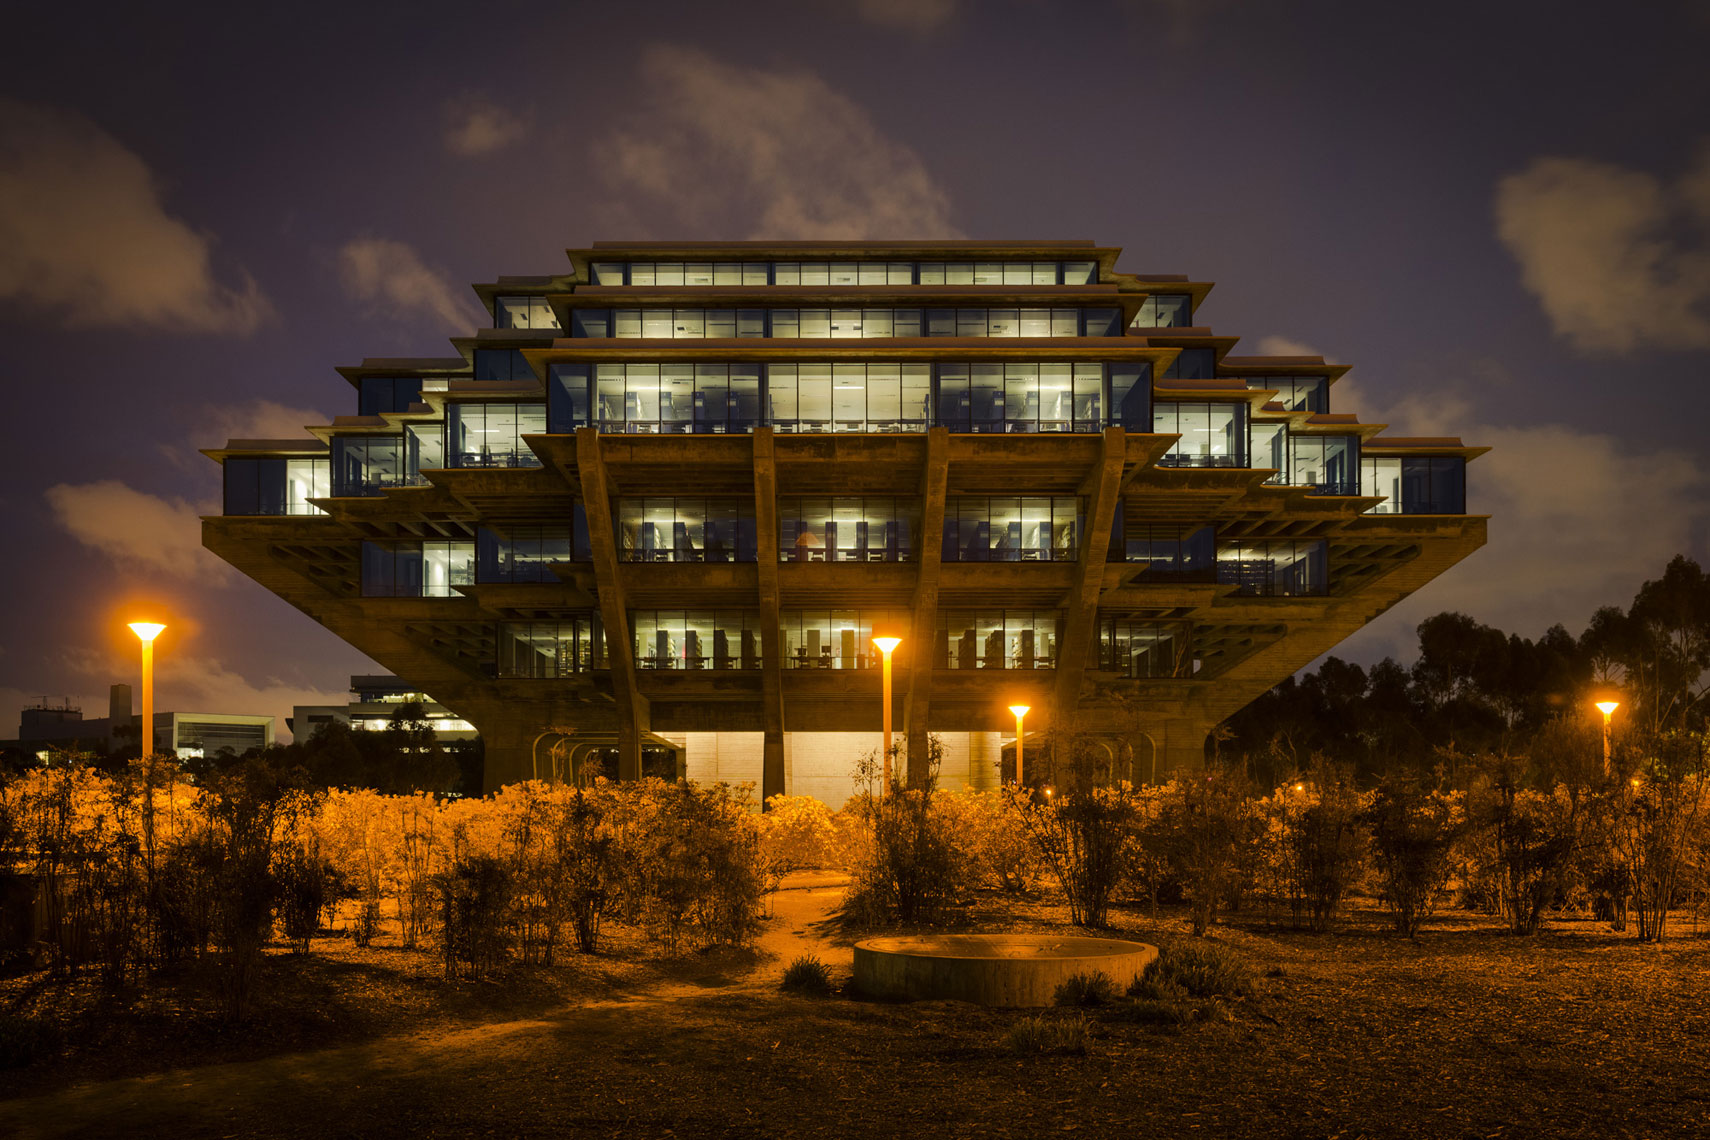 jeff-green-geisel-library-ucsd-la-jolla-exterior-architecture-night